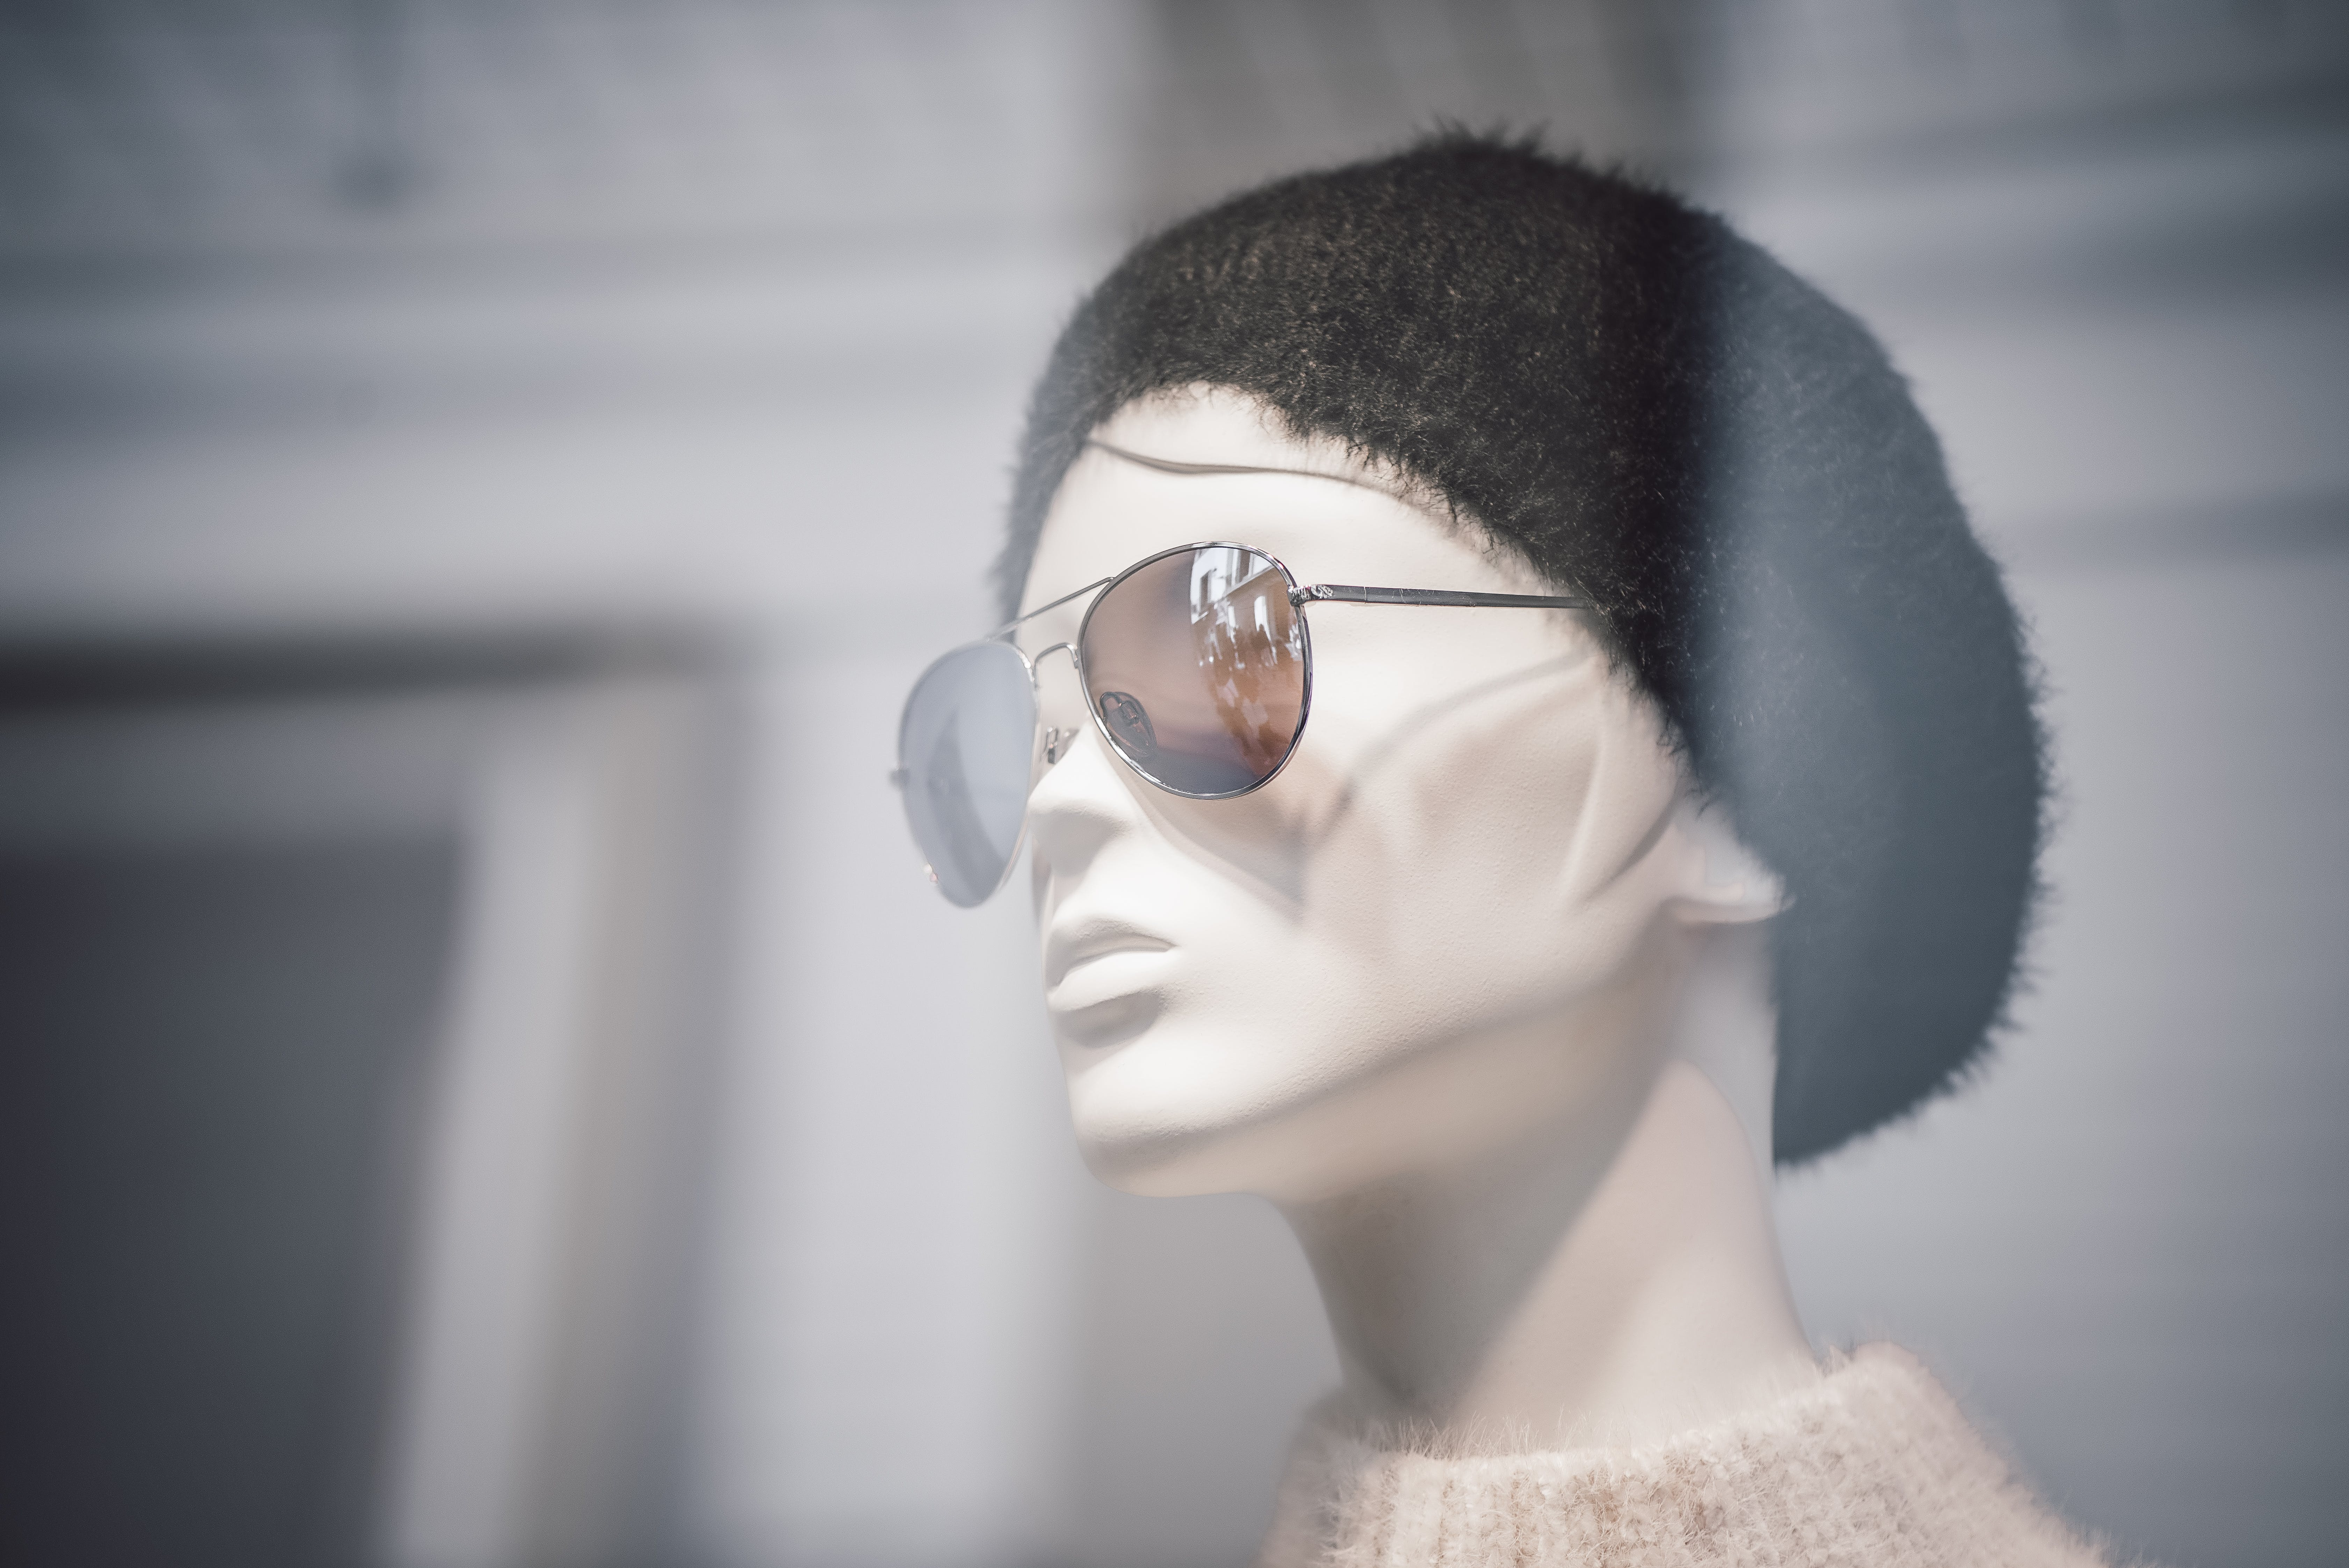 Mannequin Wearing Sunglasses and Black Cap